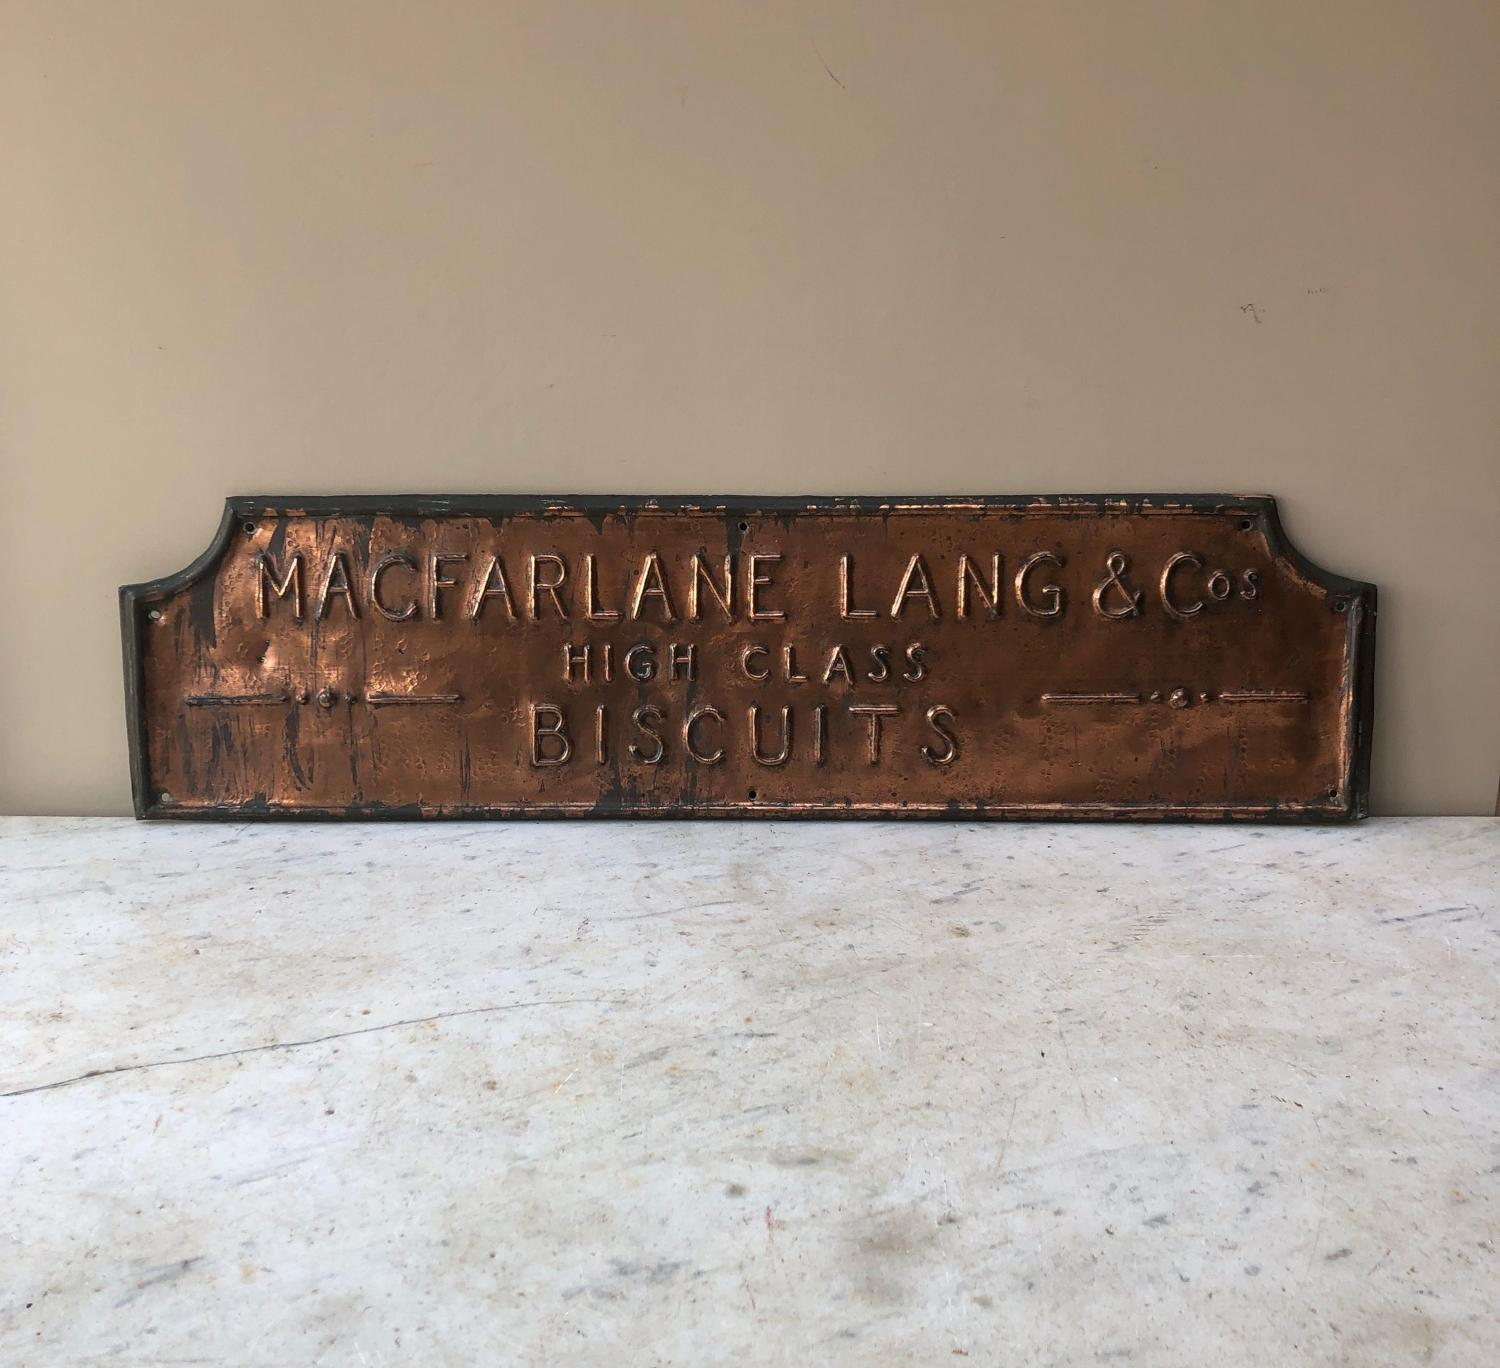 Edwardian Pressed Copper Shops Advertising Sign - Macfarlane Biscuits